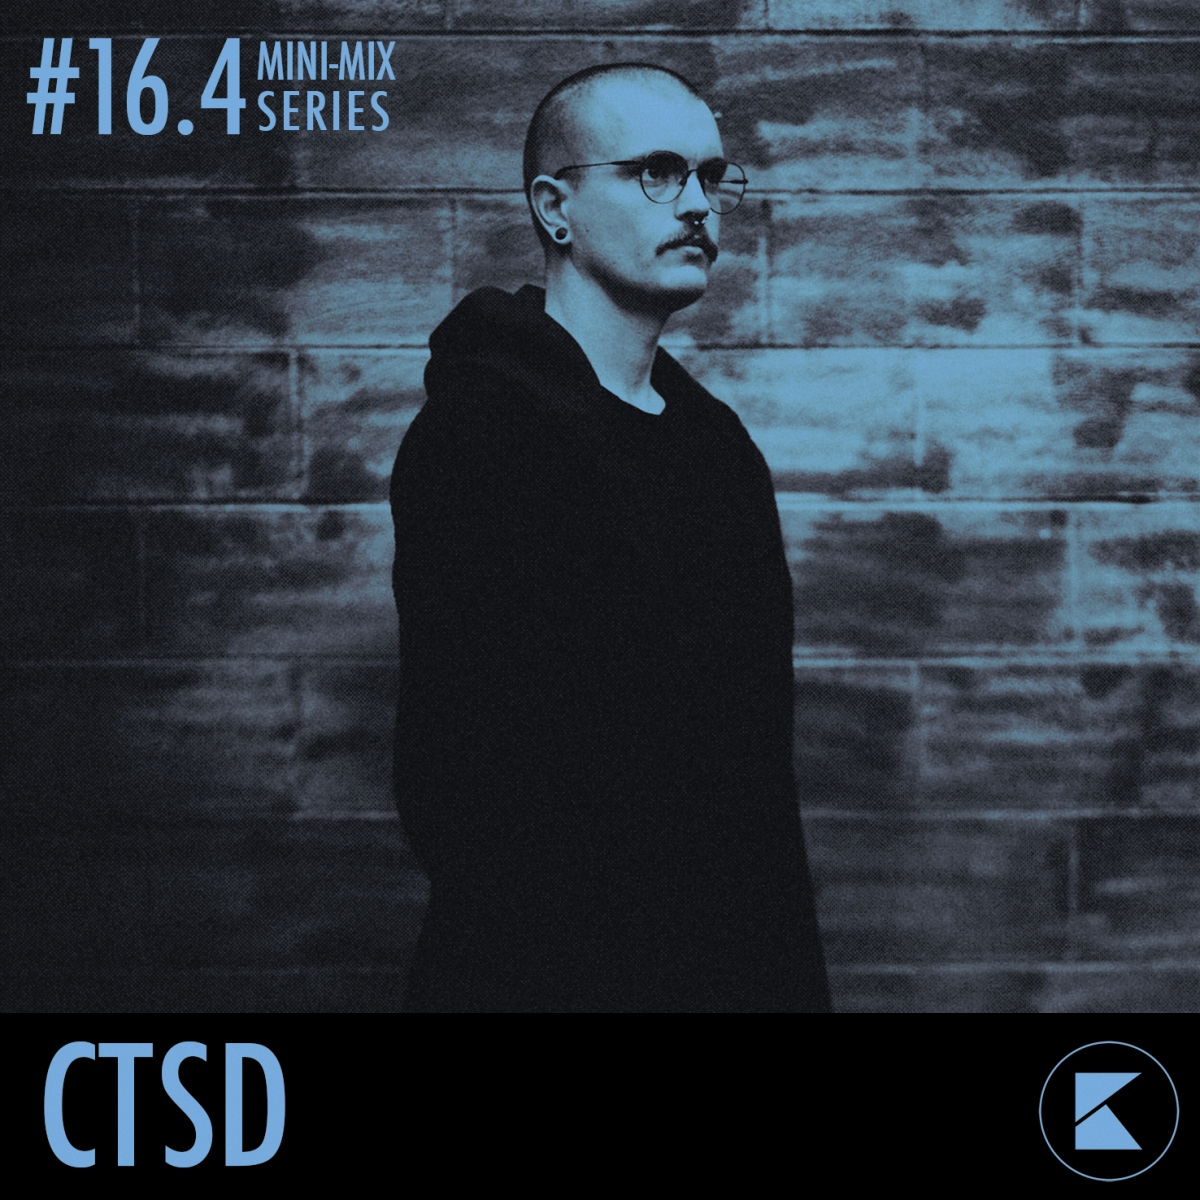 KONTRAST MINI-MIX #16.4 – CTSD